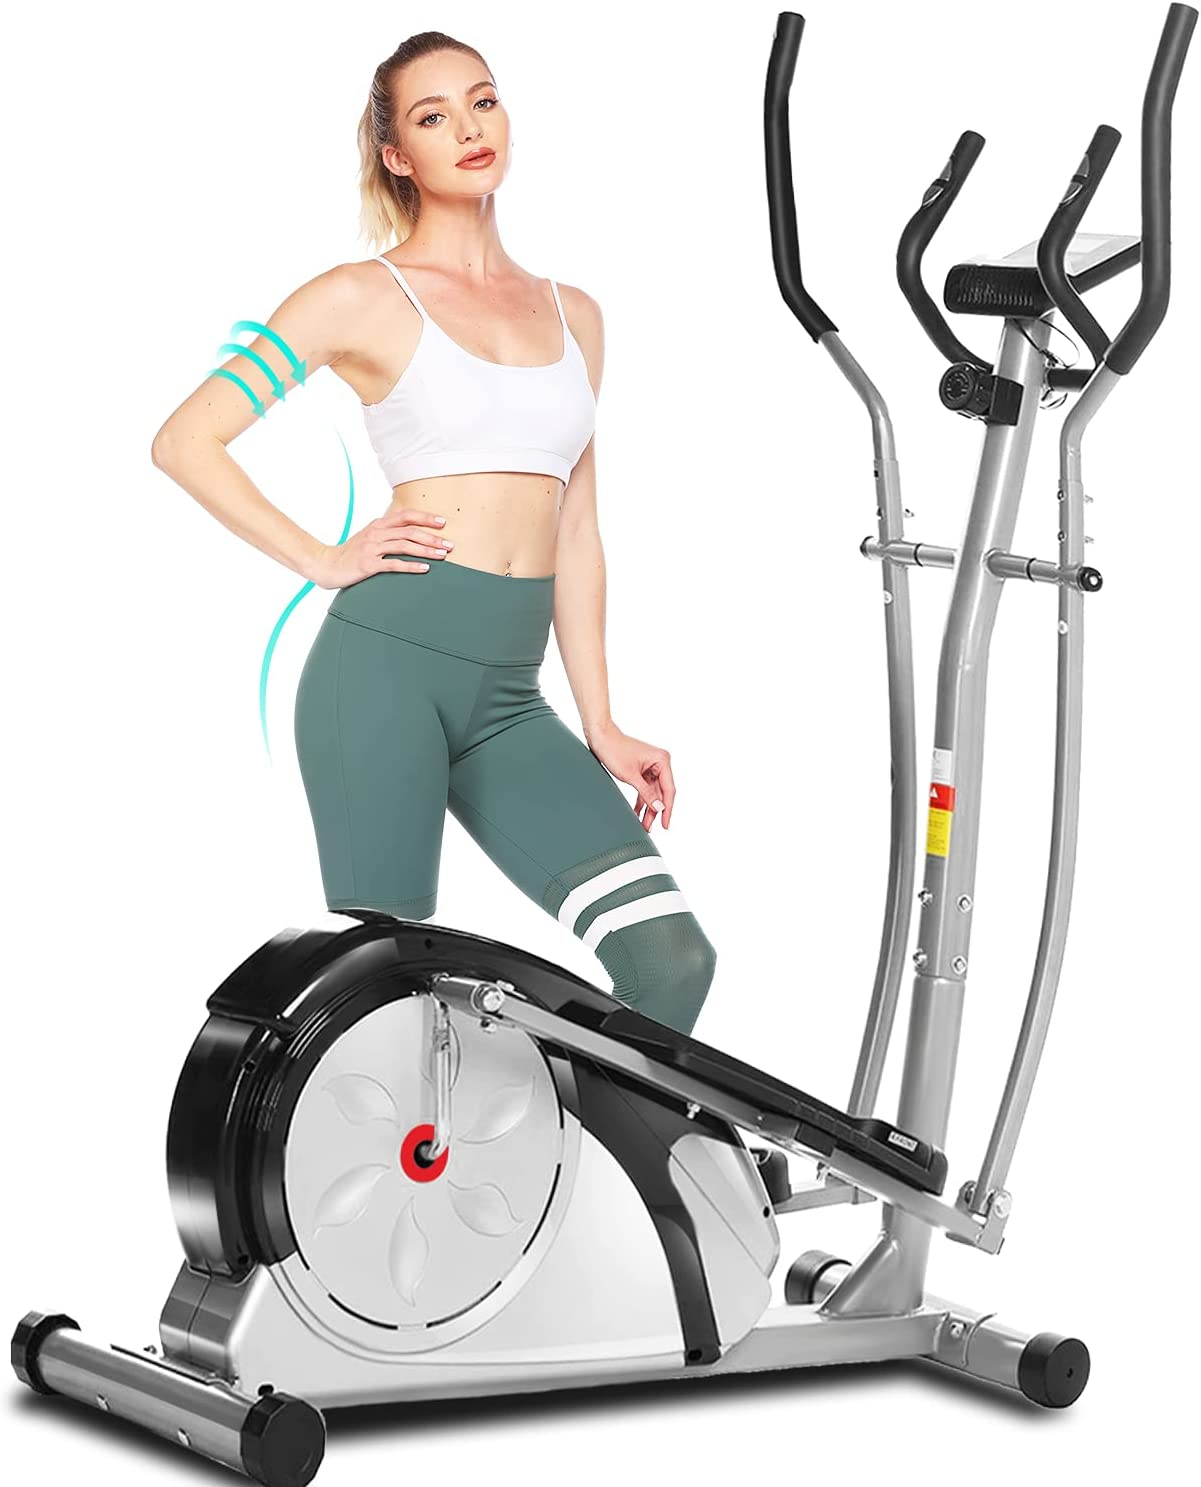 ANCHEER Elliptical In Max 74% OFF stock Machine for Home Use Magnetic Exer Ellptical